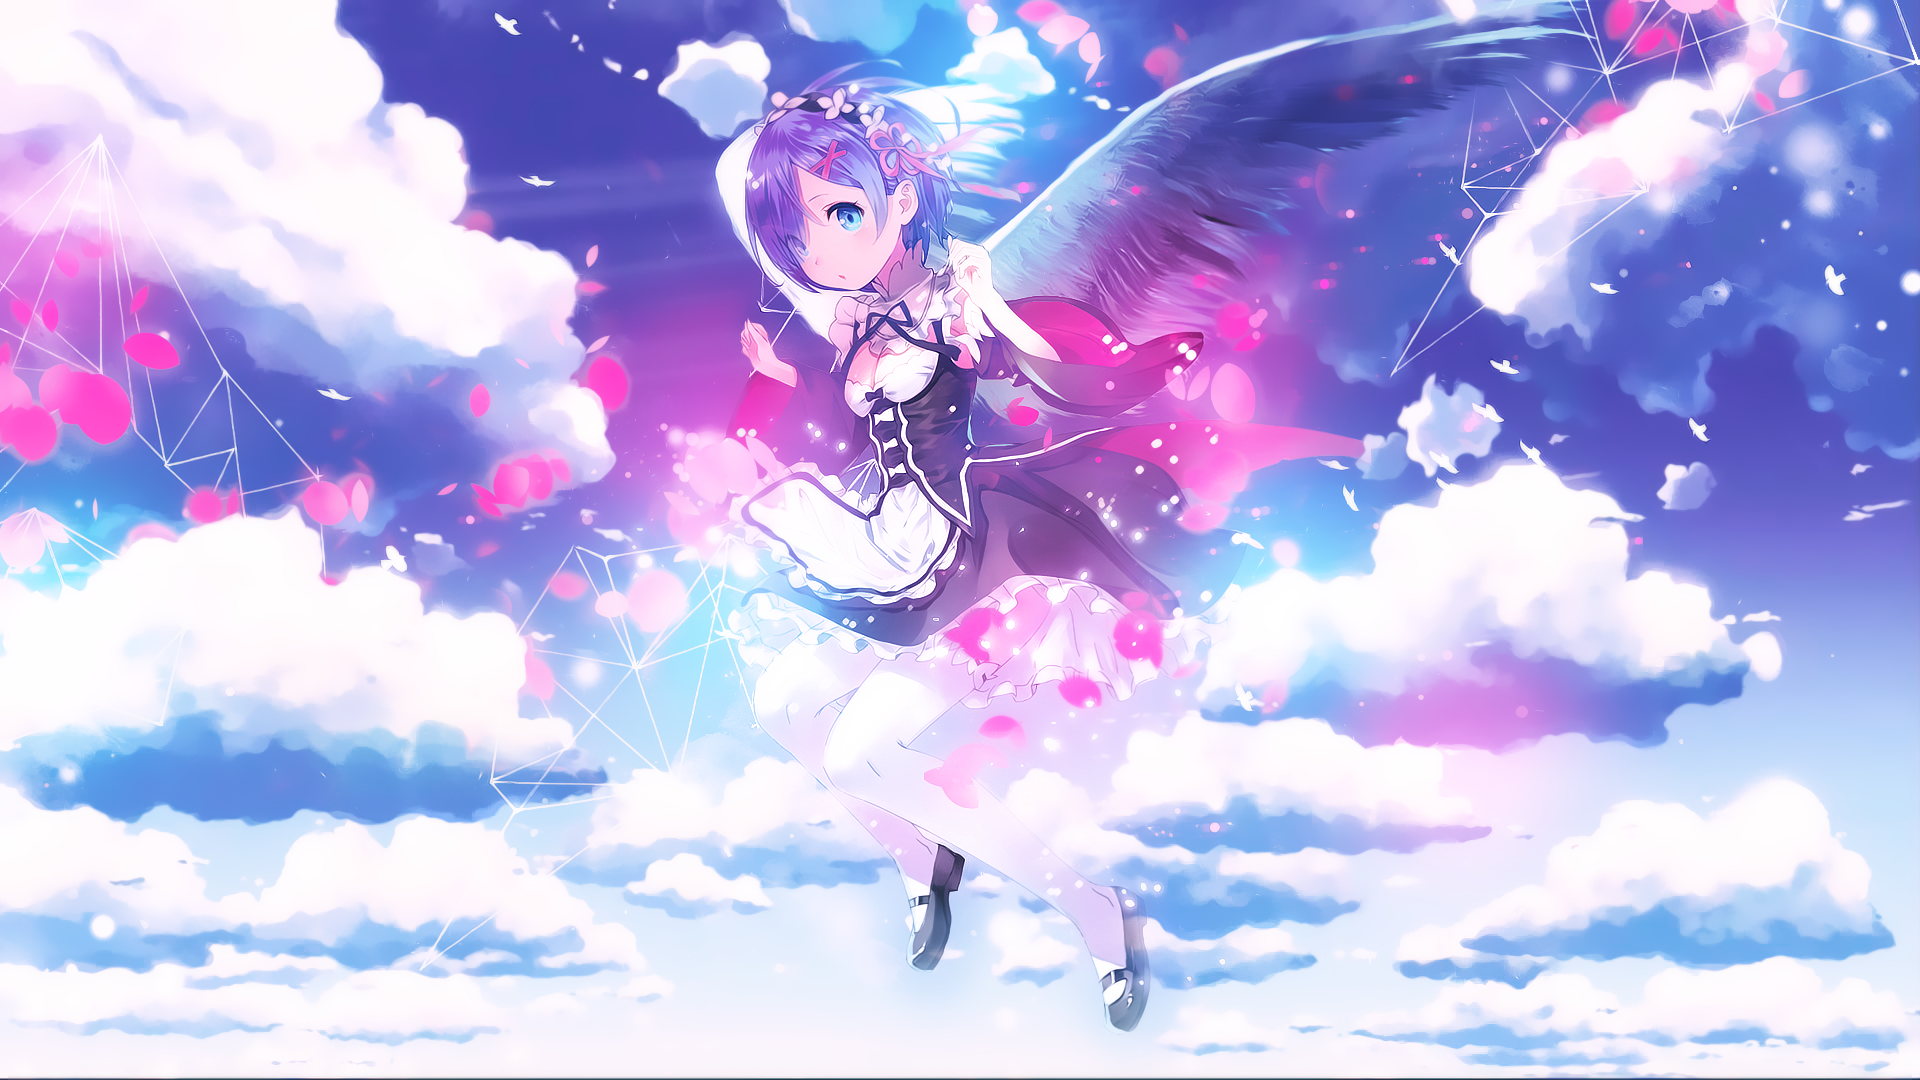 View Download Comment And Rate This 19x1080 Re Zero Starting Life In Another World Wallpaper Wallpaper Android Wallpaper Anime Anime Re Zero Wallpaper